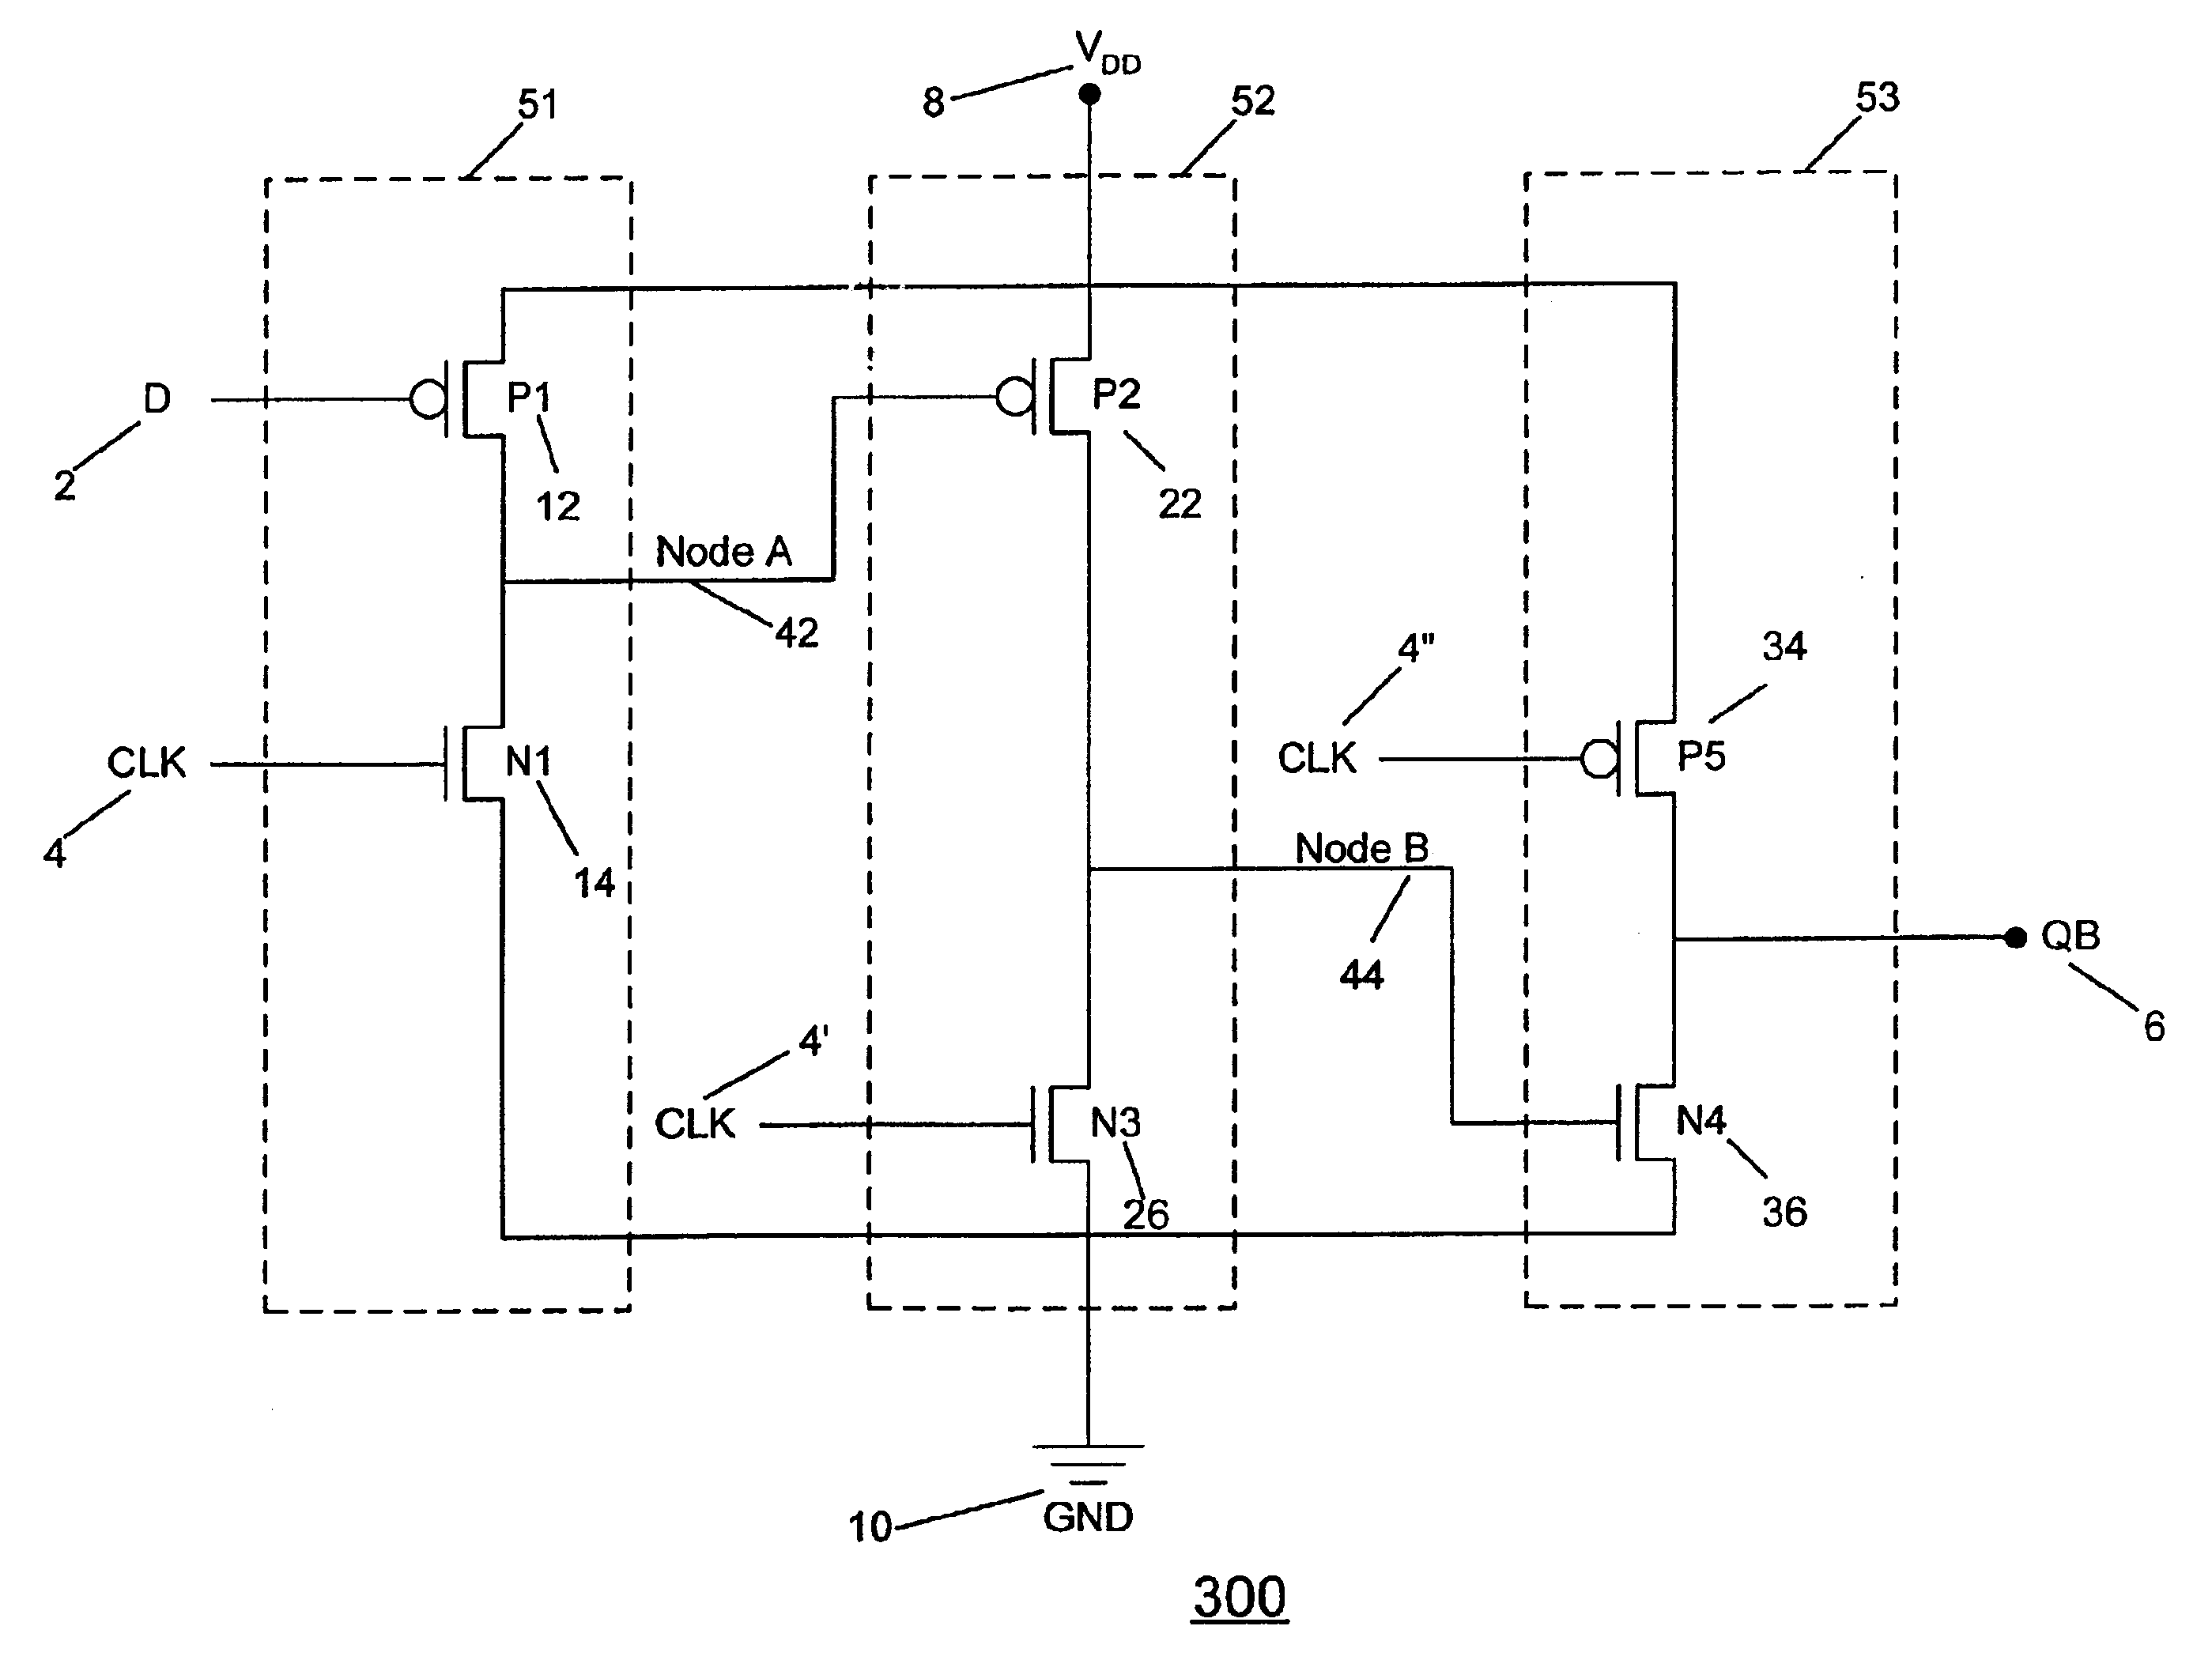 D Type Flip Flop Circuit Diagram Wiring Diagrams Jk Patent Us6737900 Silicon On Insulator Dynamic 7473